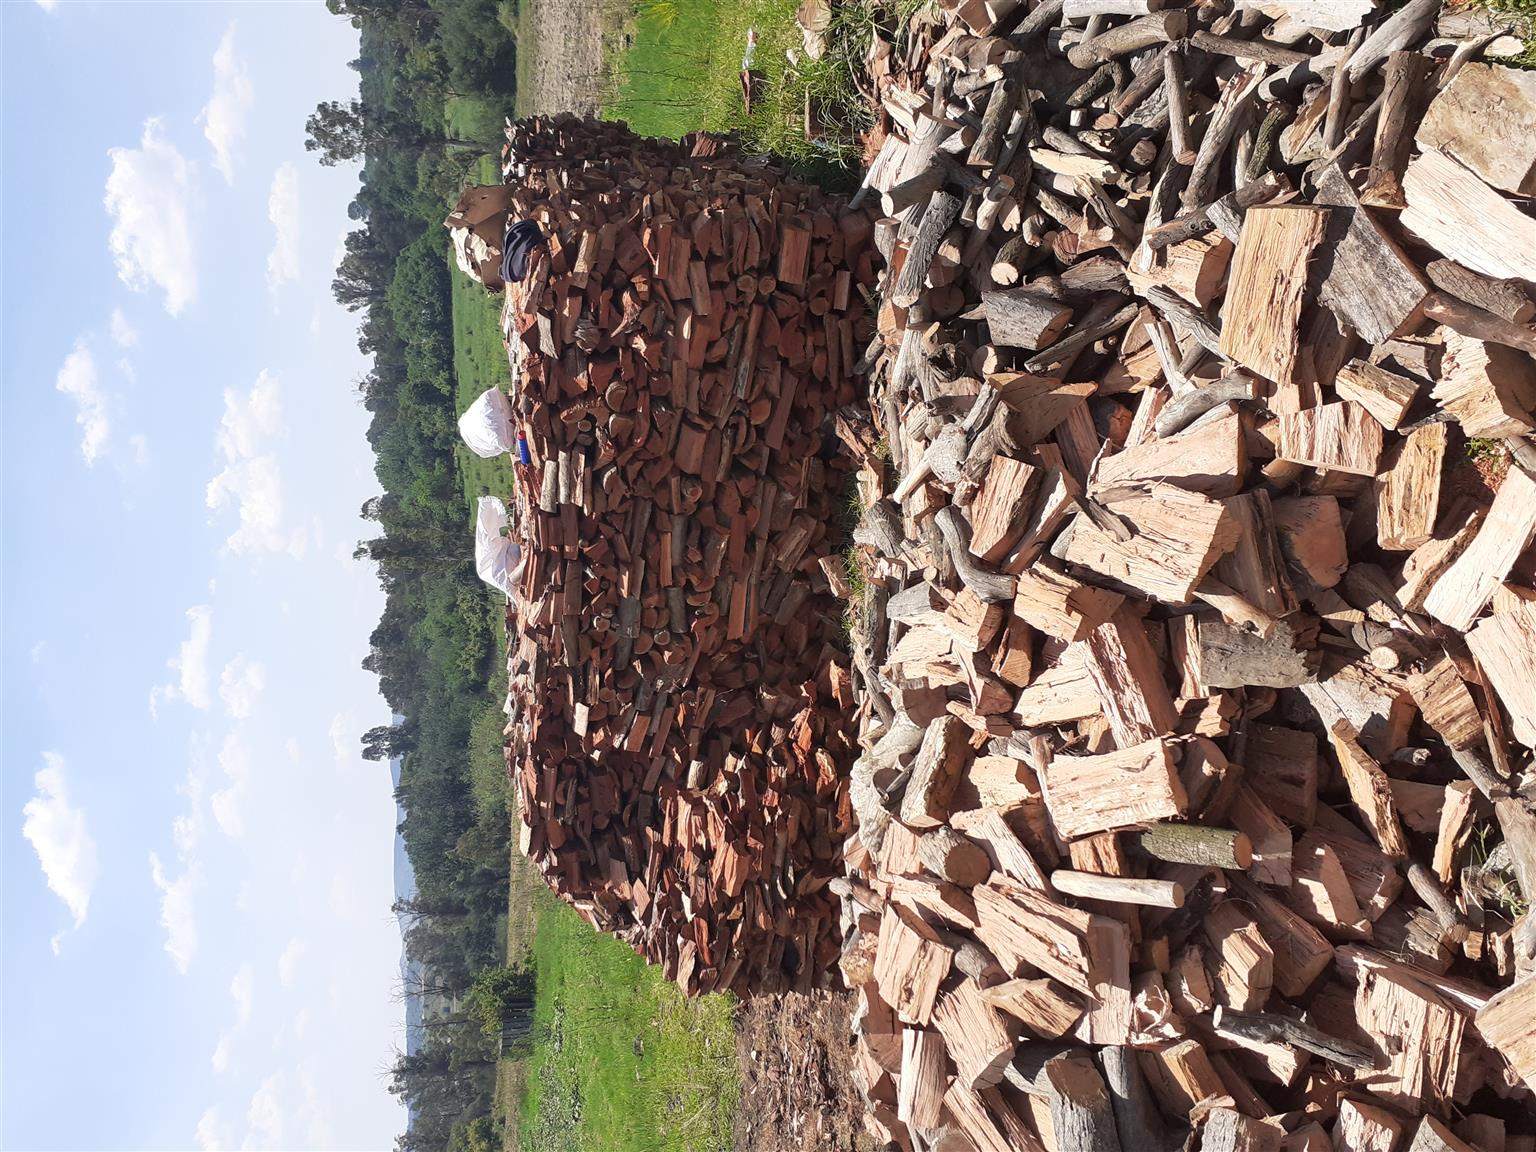 Dry Firewood 🔥( Closed and Open Fireplace Wood)